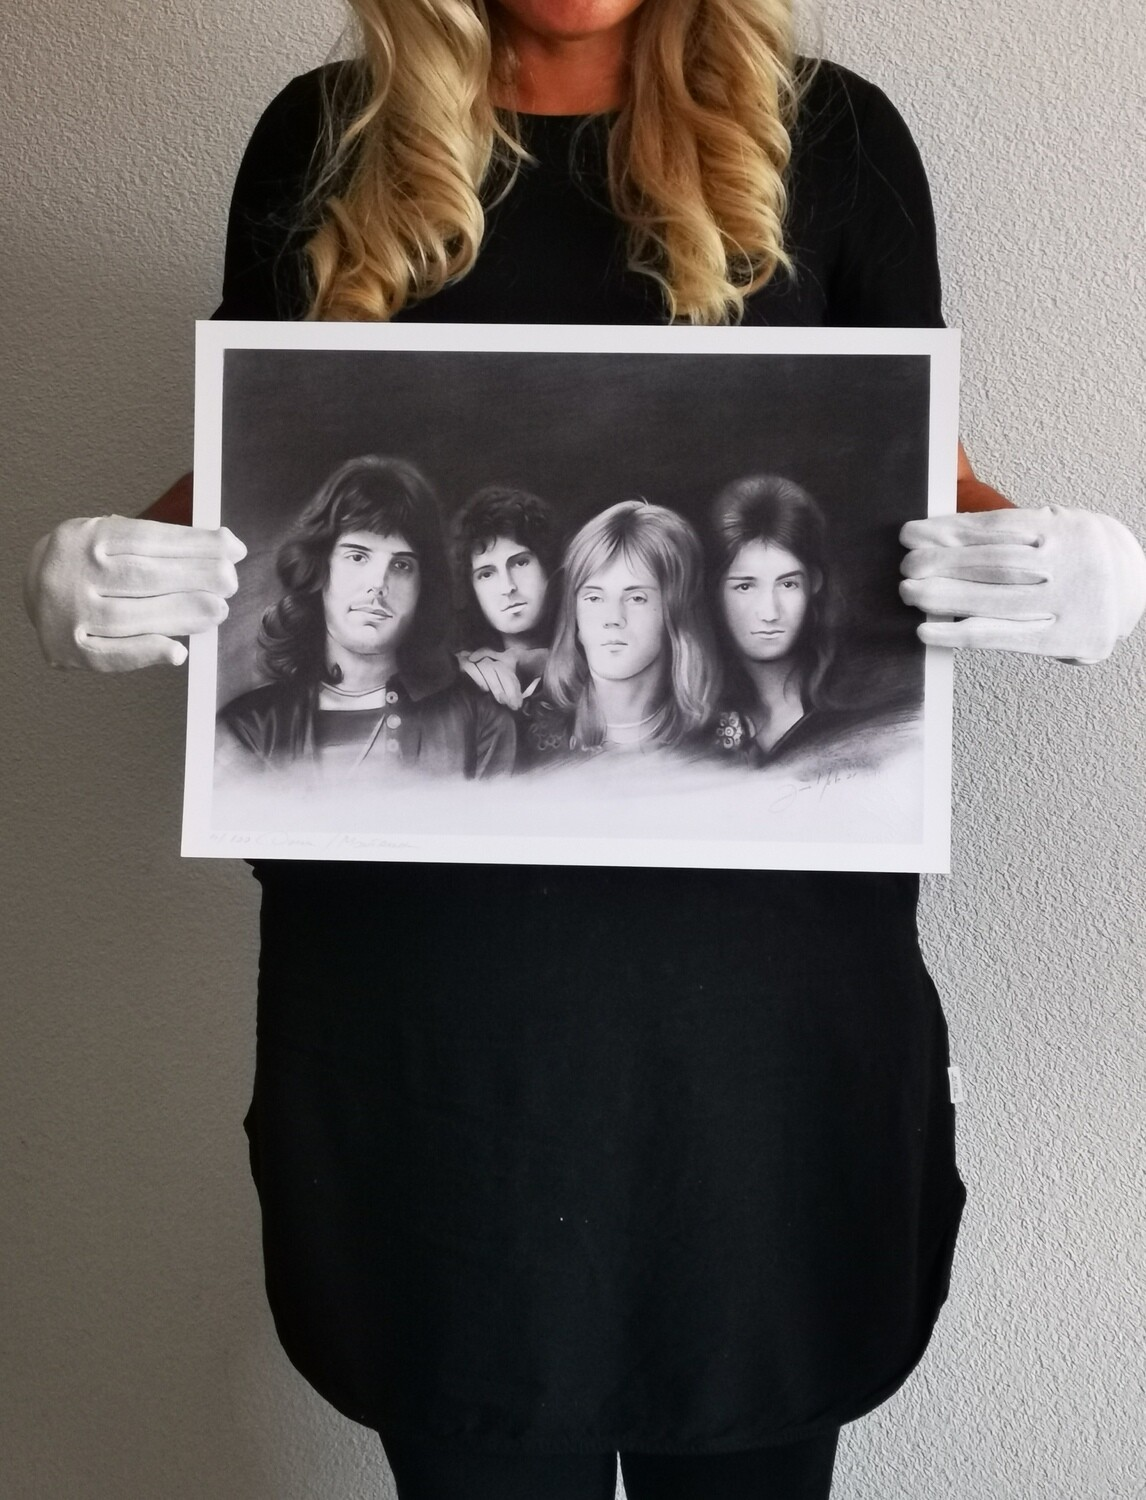 Queen /Limited edition print